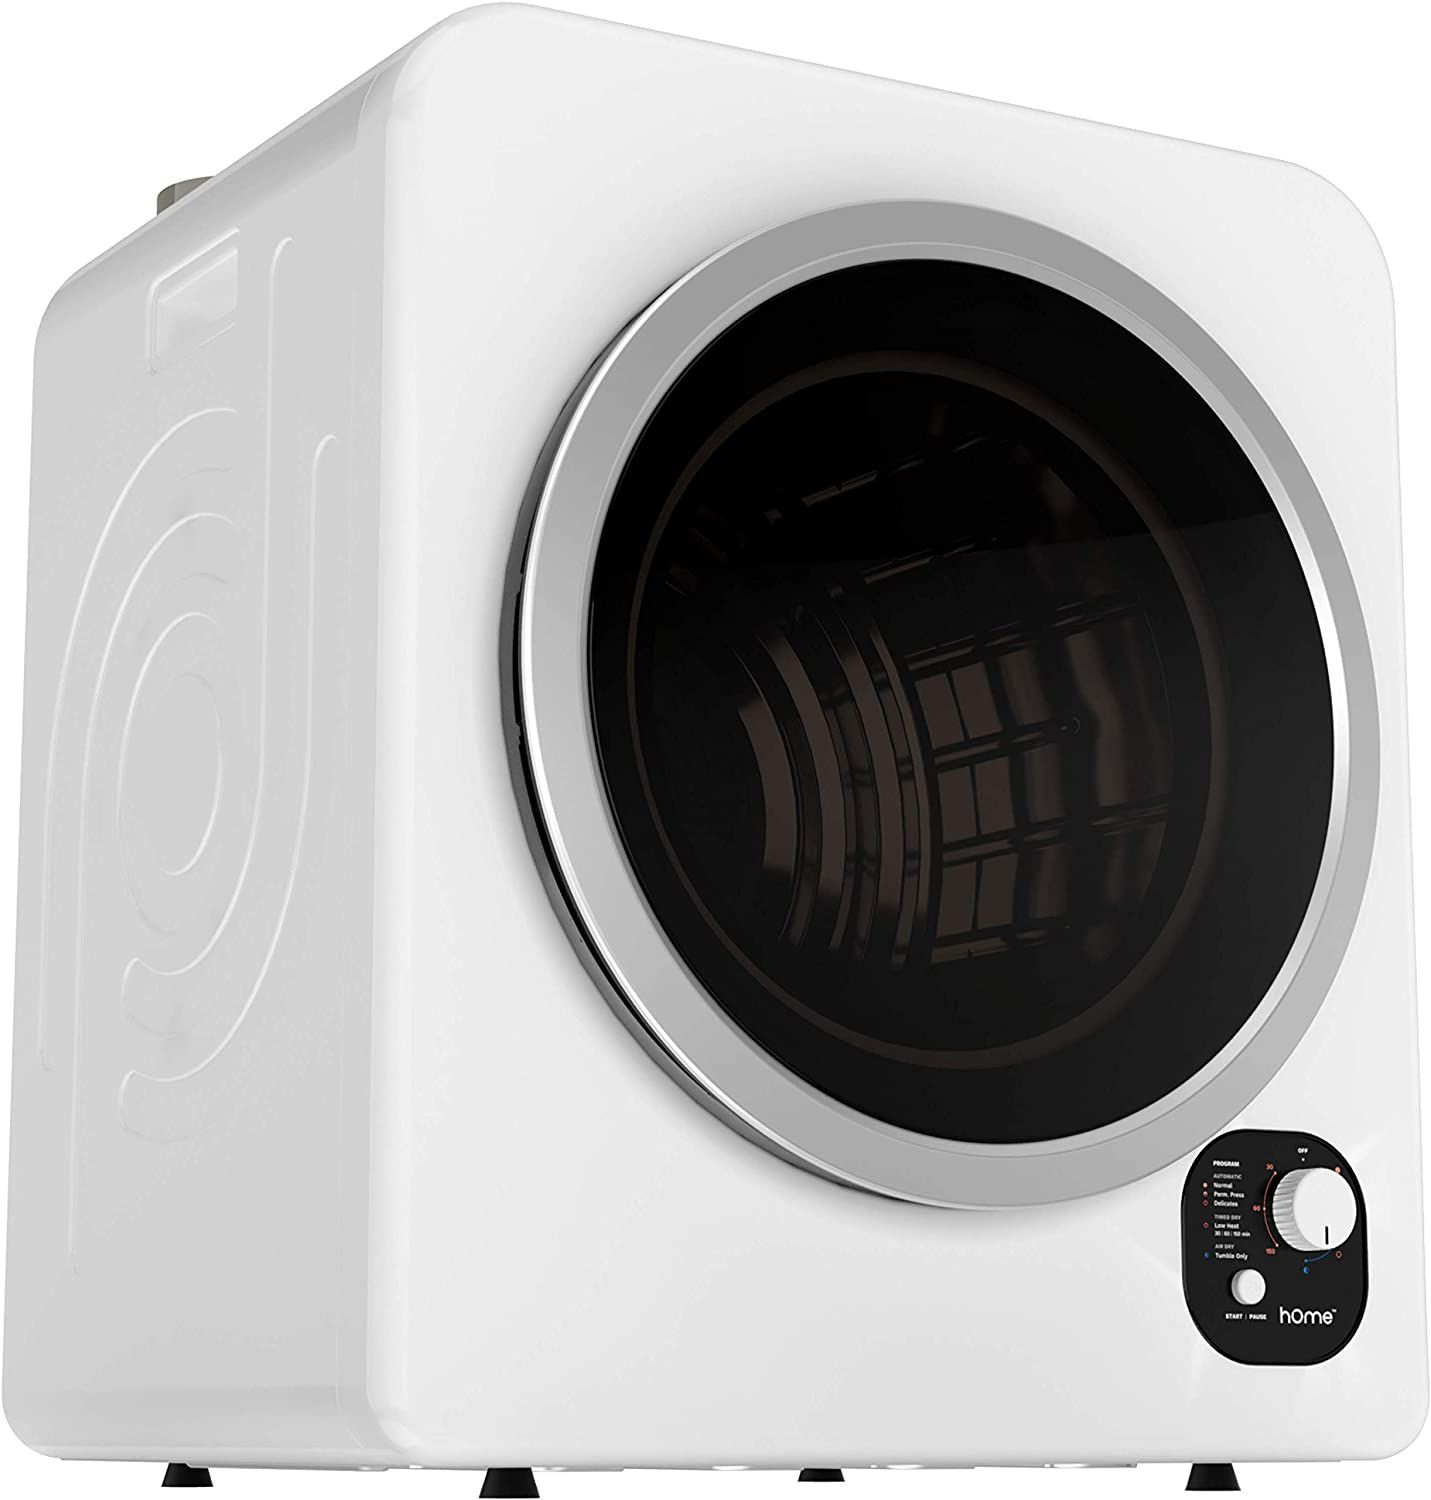 hOmelabs Compact Laundry Dryer